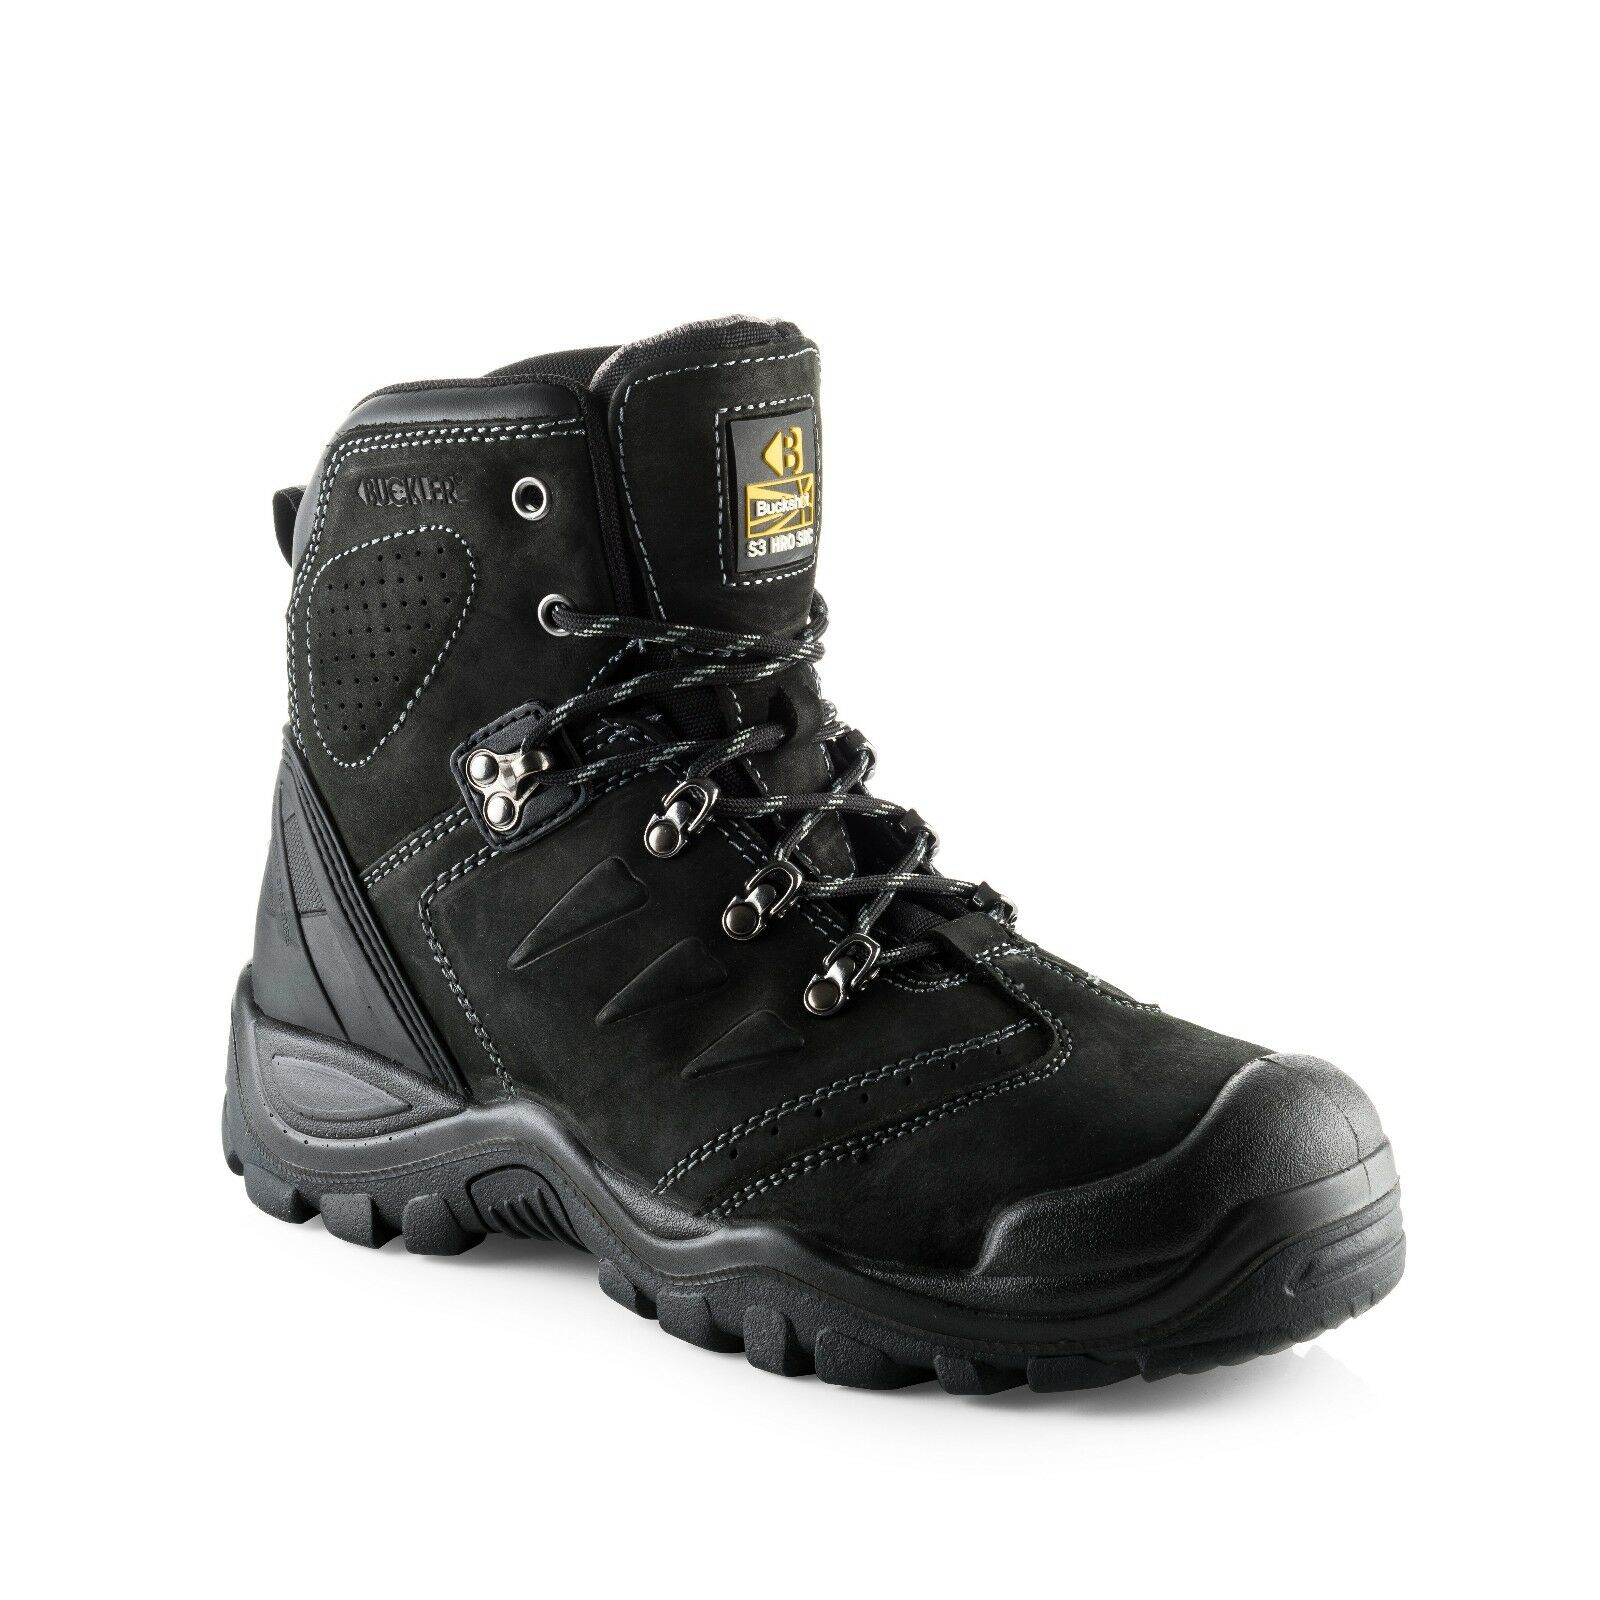 Buckler Safety Work botas (Various Styles) Hombre's Anti-Scuff Steel Toe Toe Toe Zapatos 2f5a42